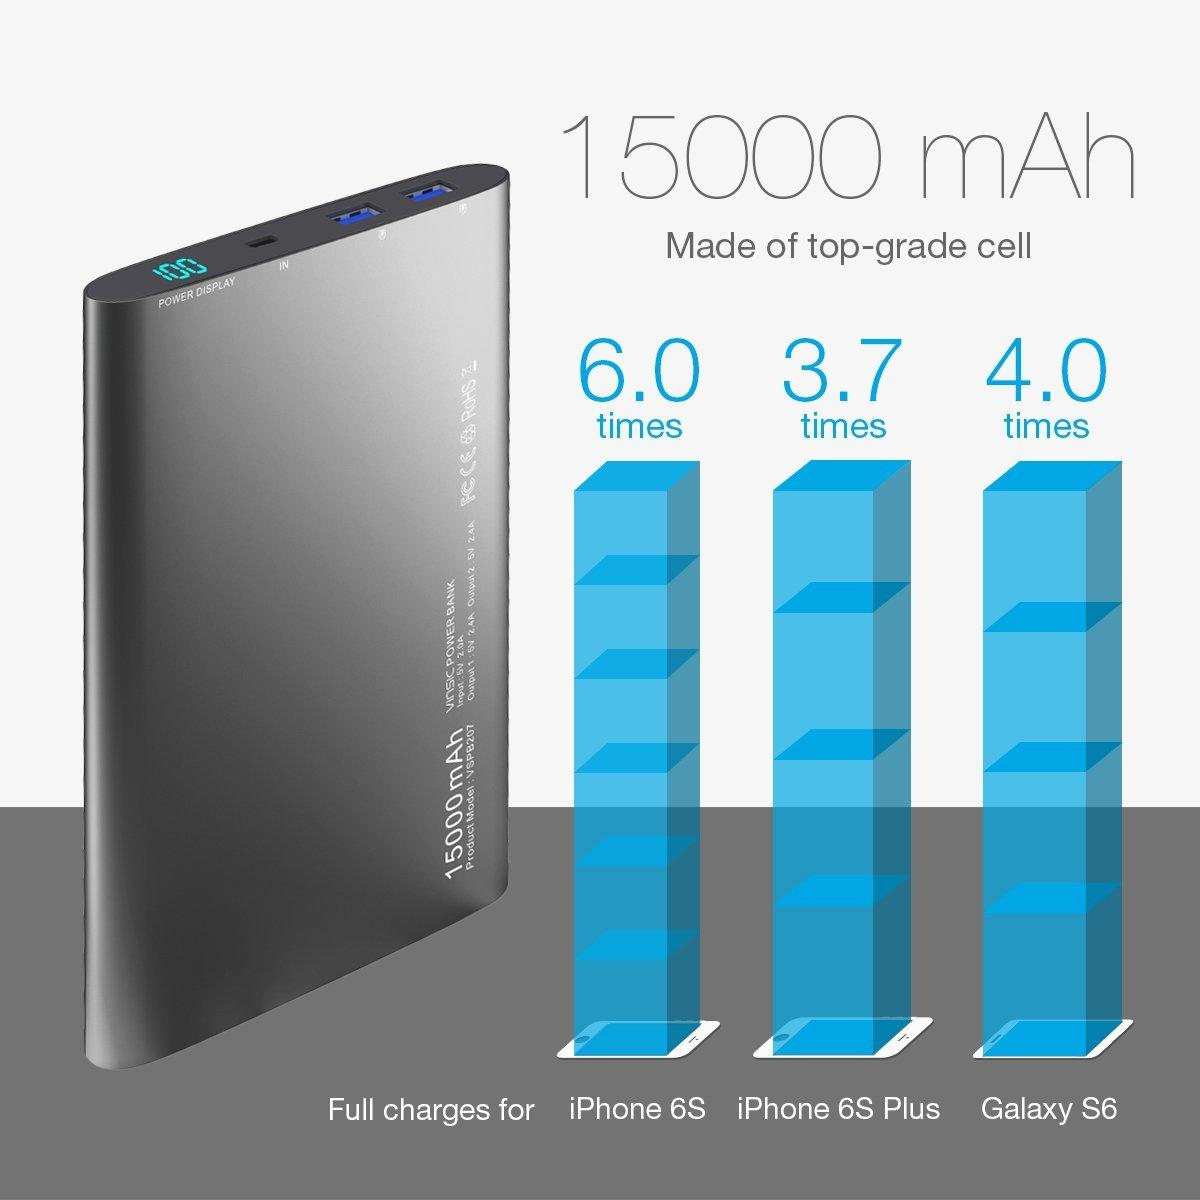 Vinsic 15000mA Ultra-slim Power Bank